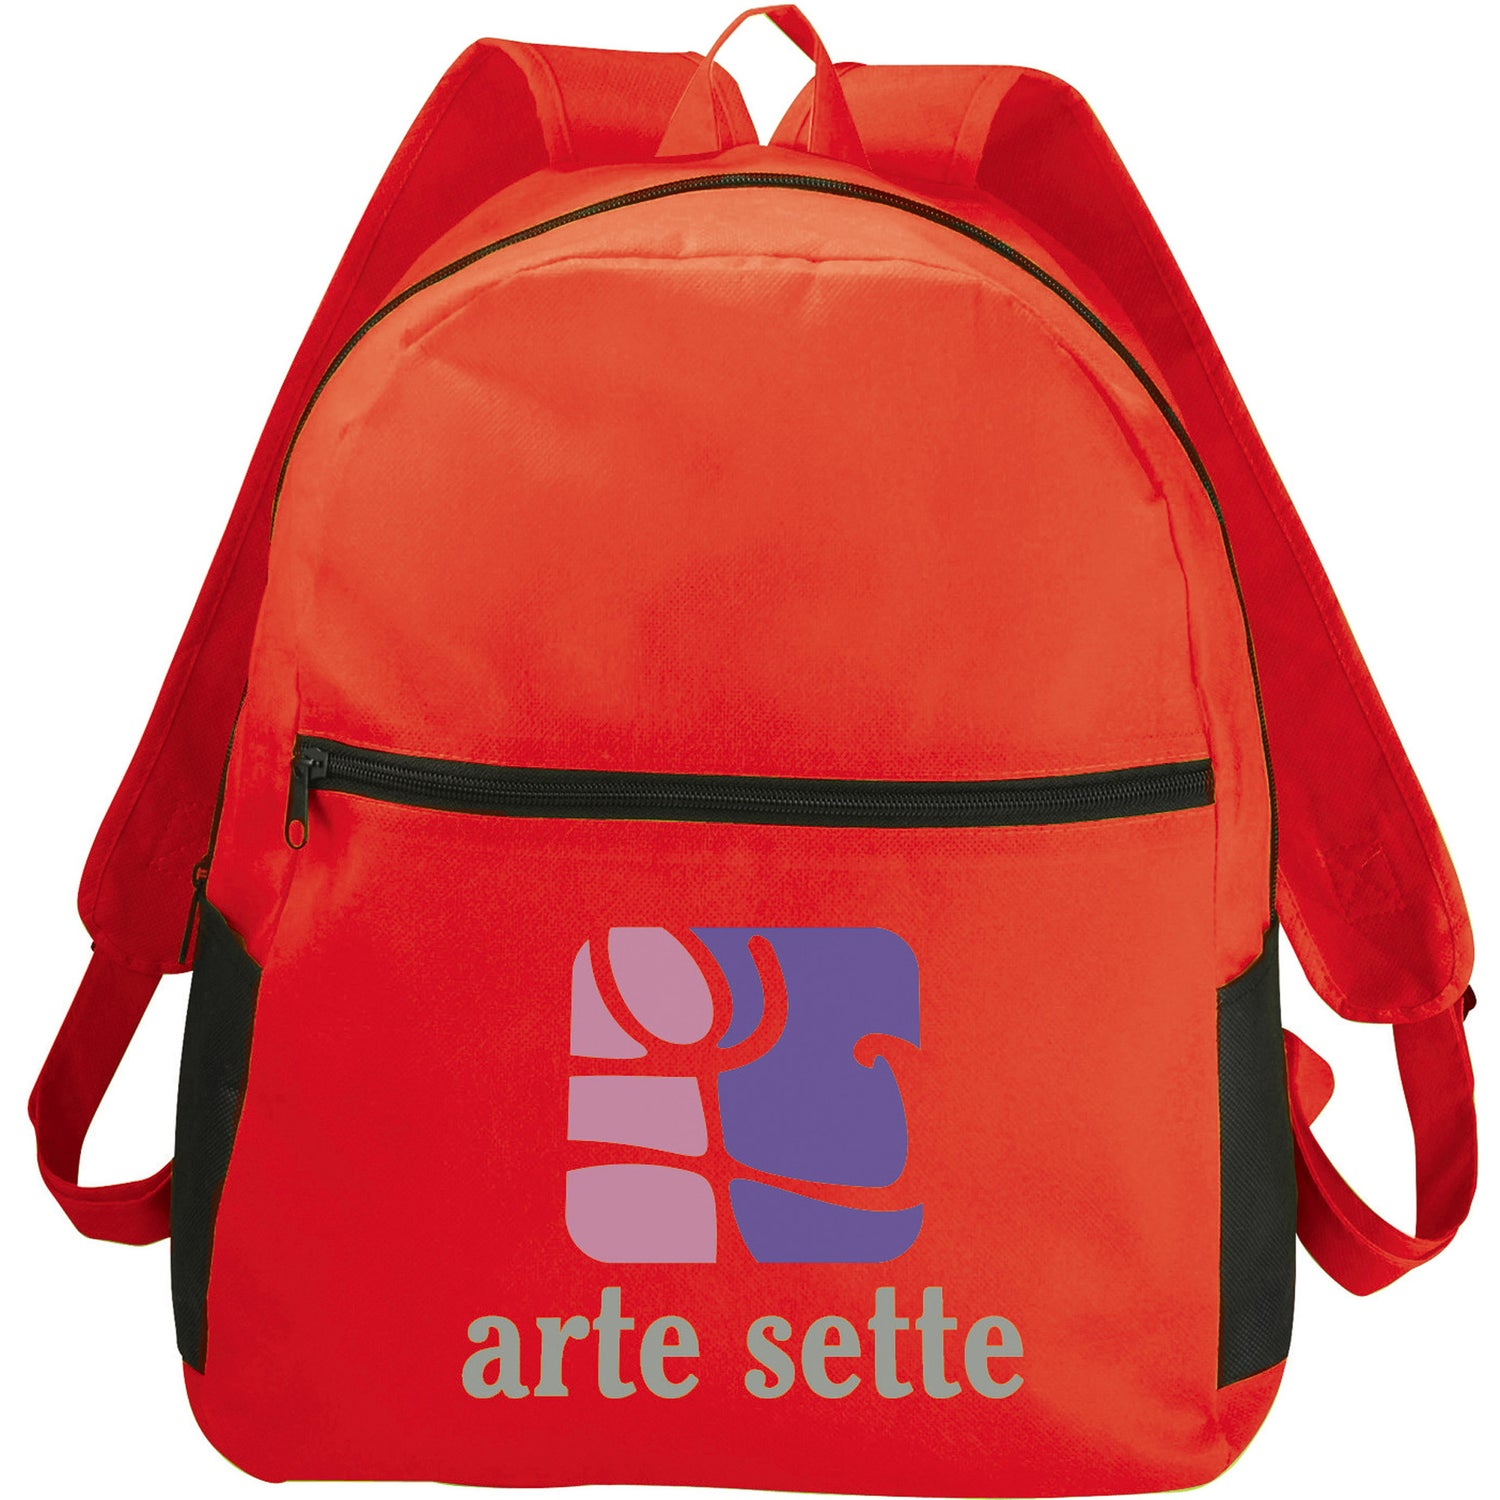 Https Www Qualitylogoproducts Com Custom Bags Park City Backpack Htm